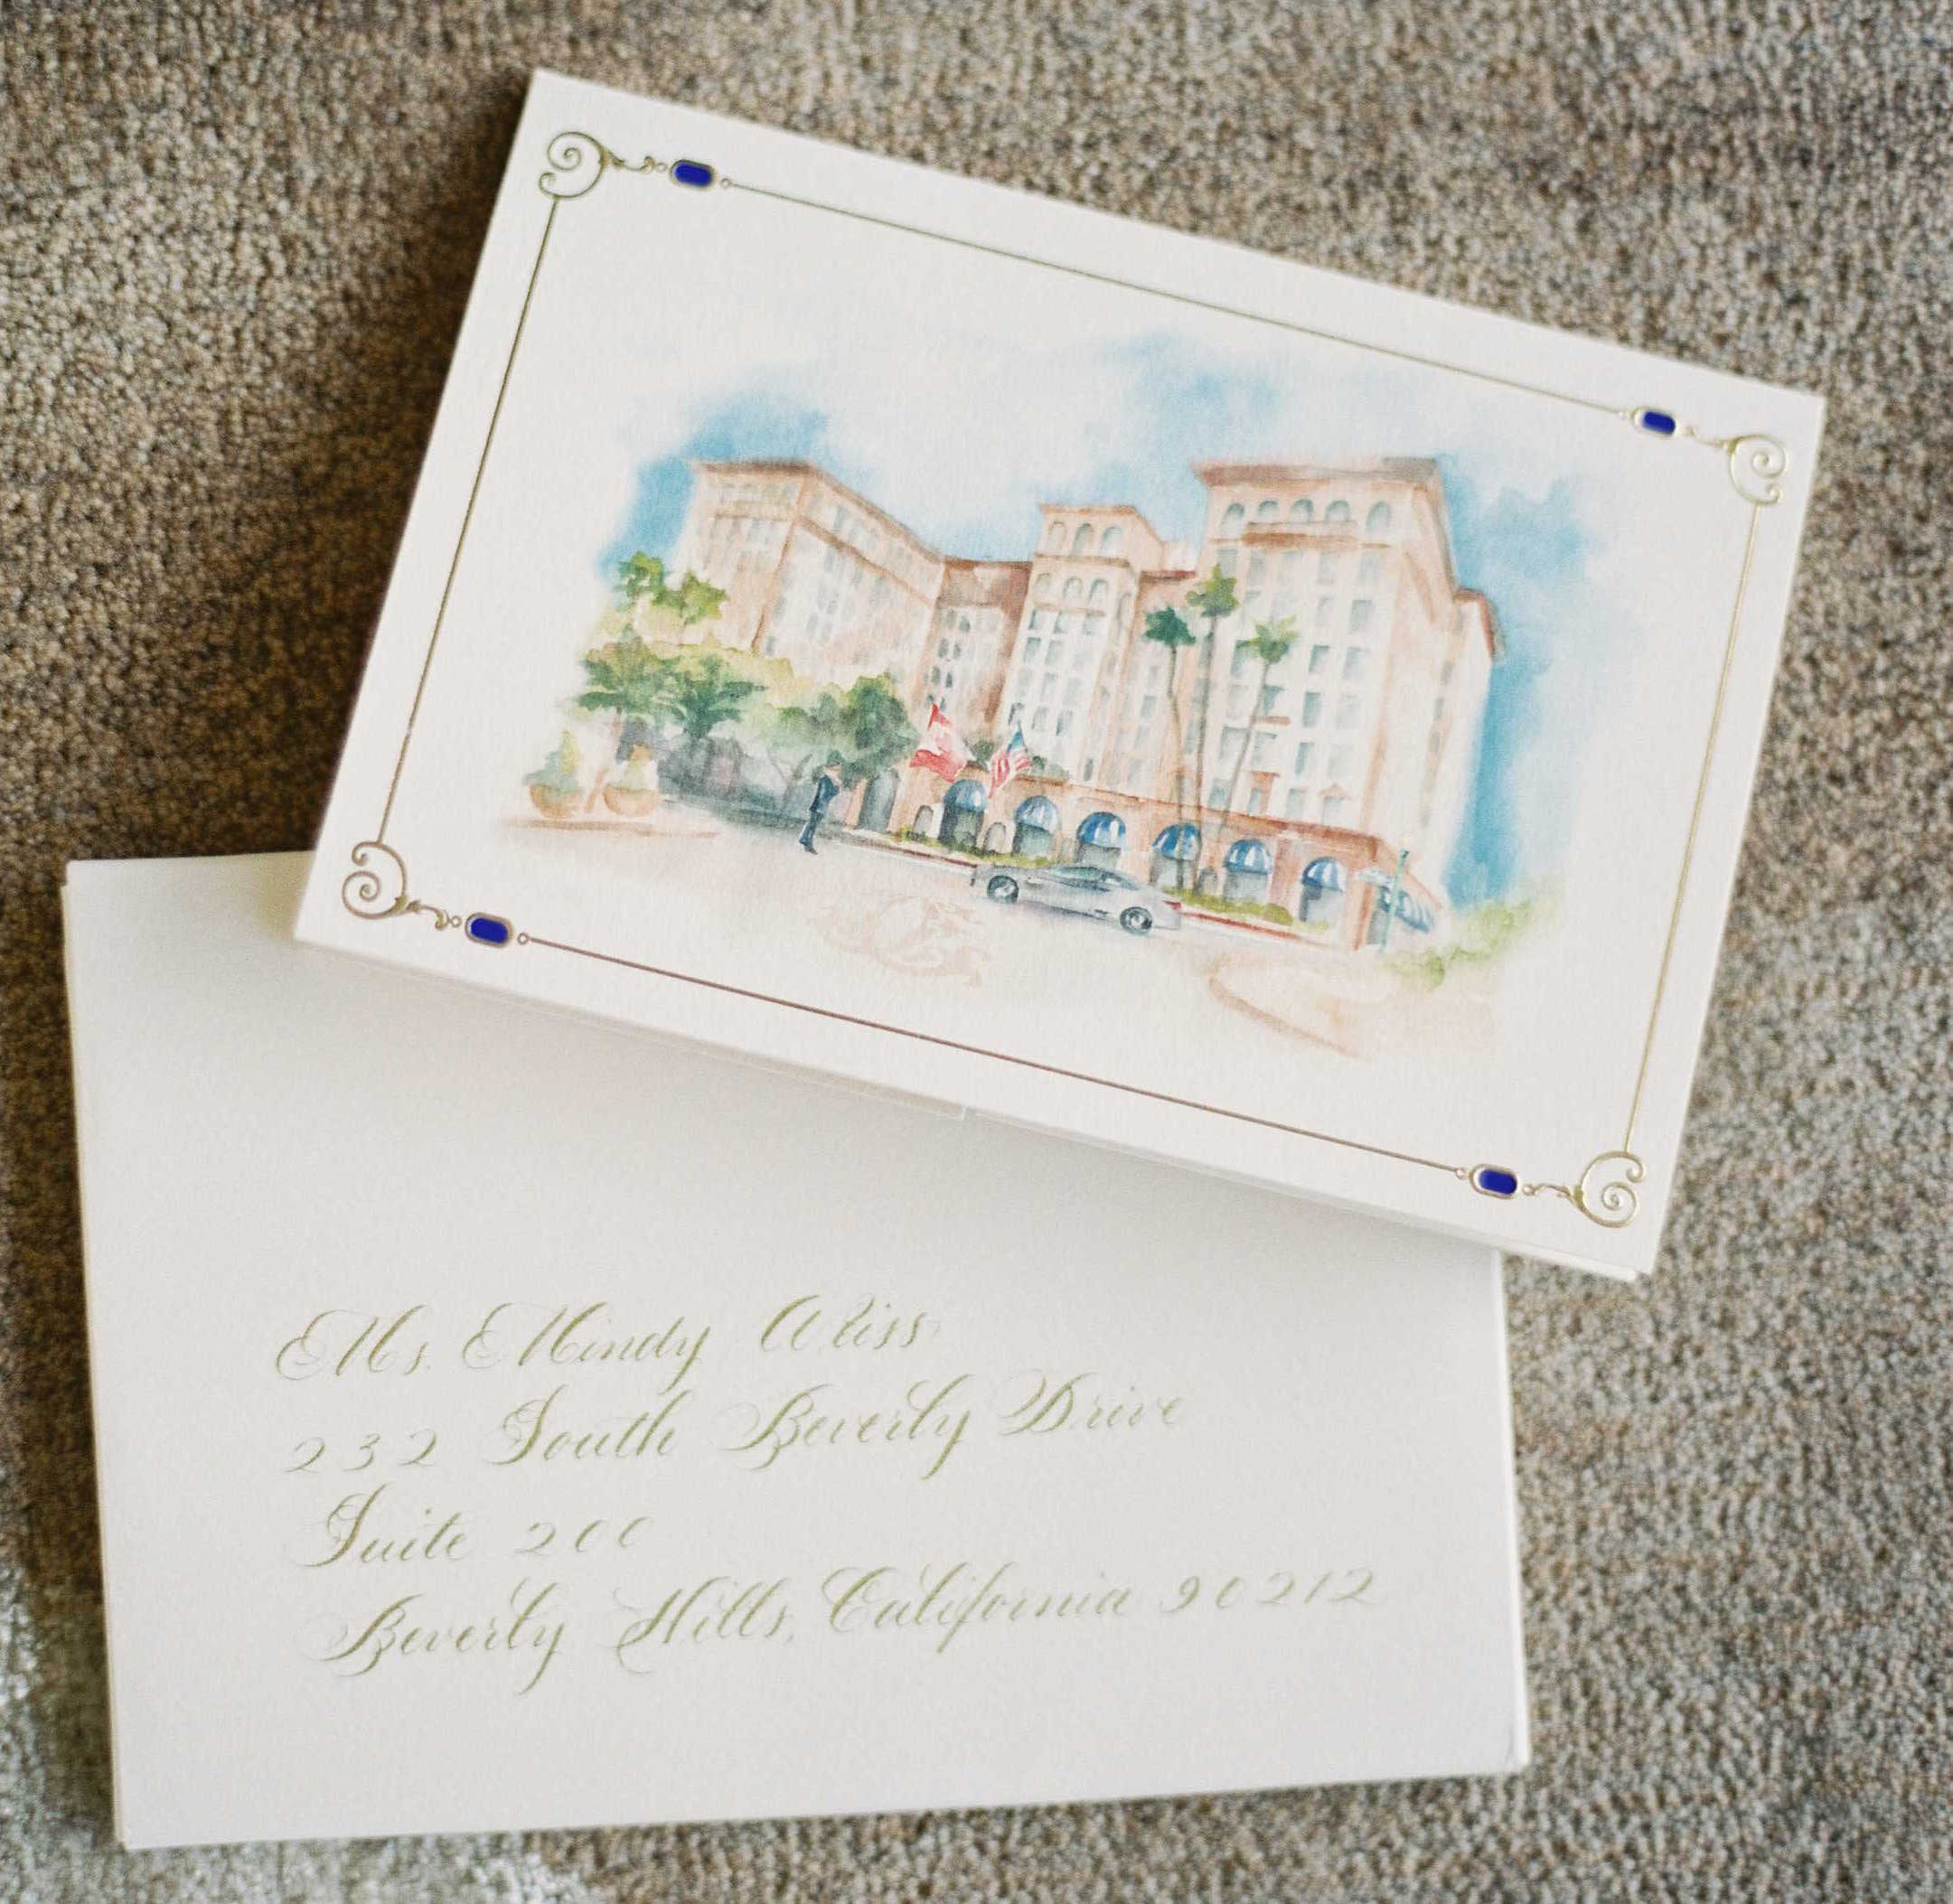 Watercolor painting of venue on wedding invitation